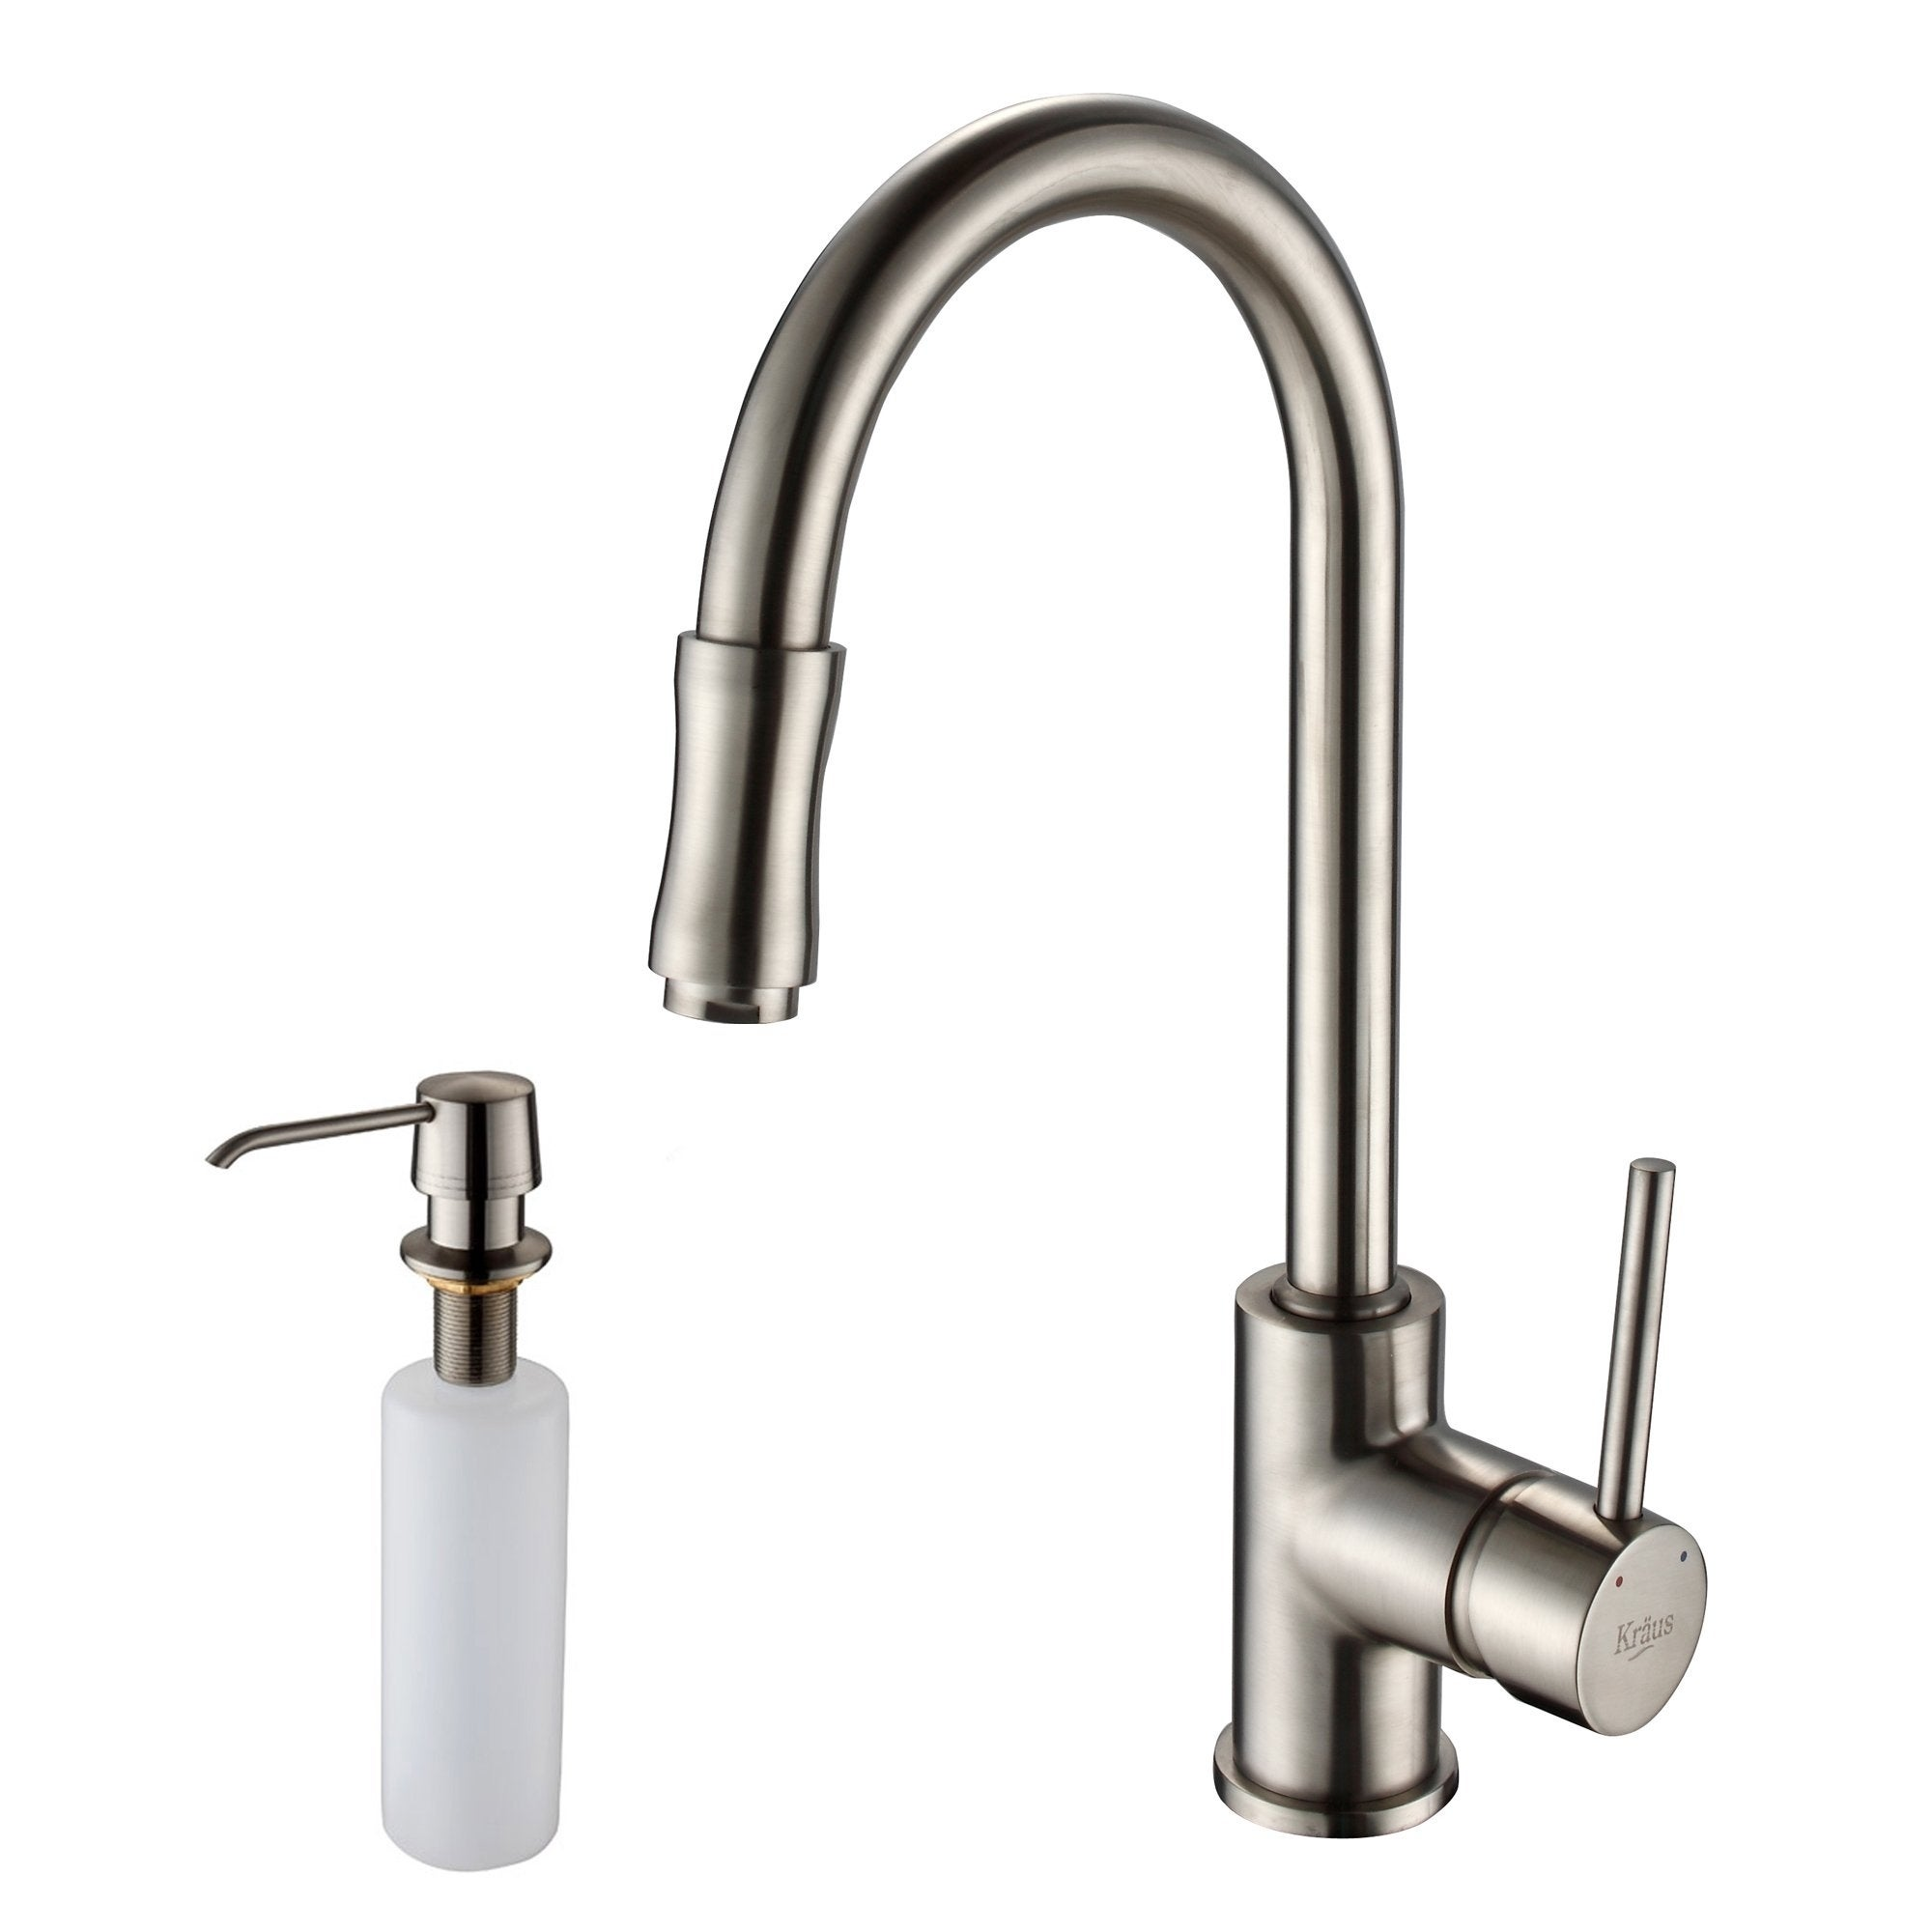 Kraus Single-Handle Kitchen Faucet with Pull Down Dual-Fu...